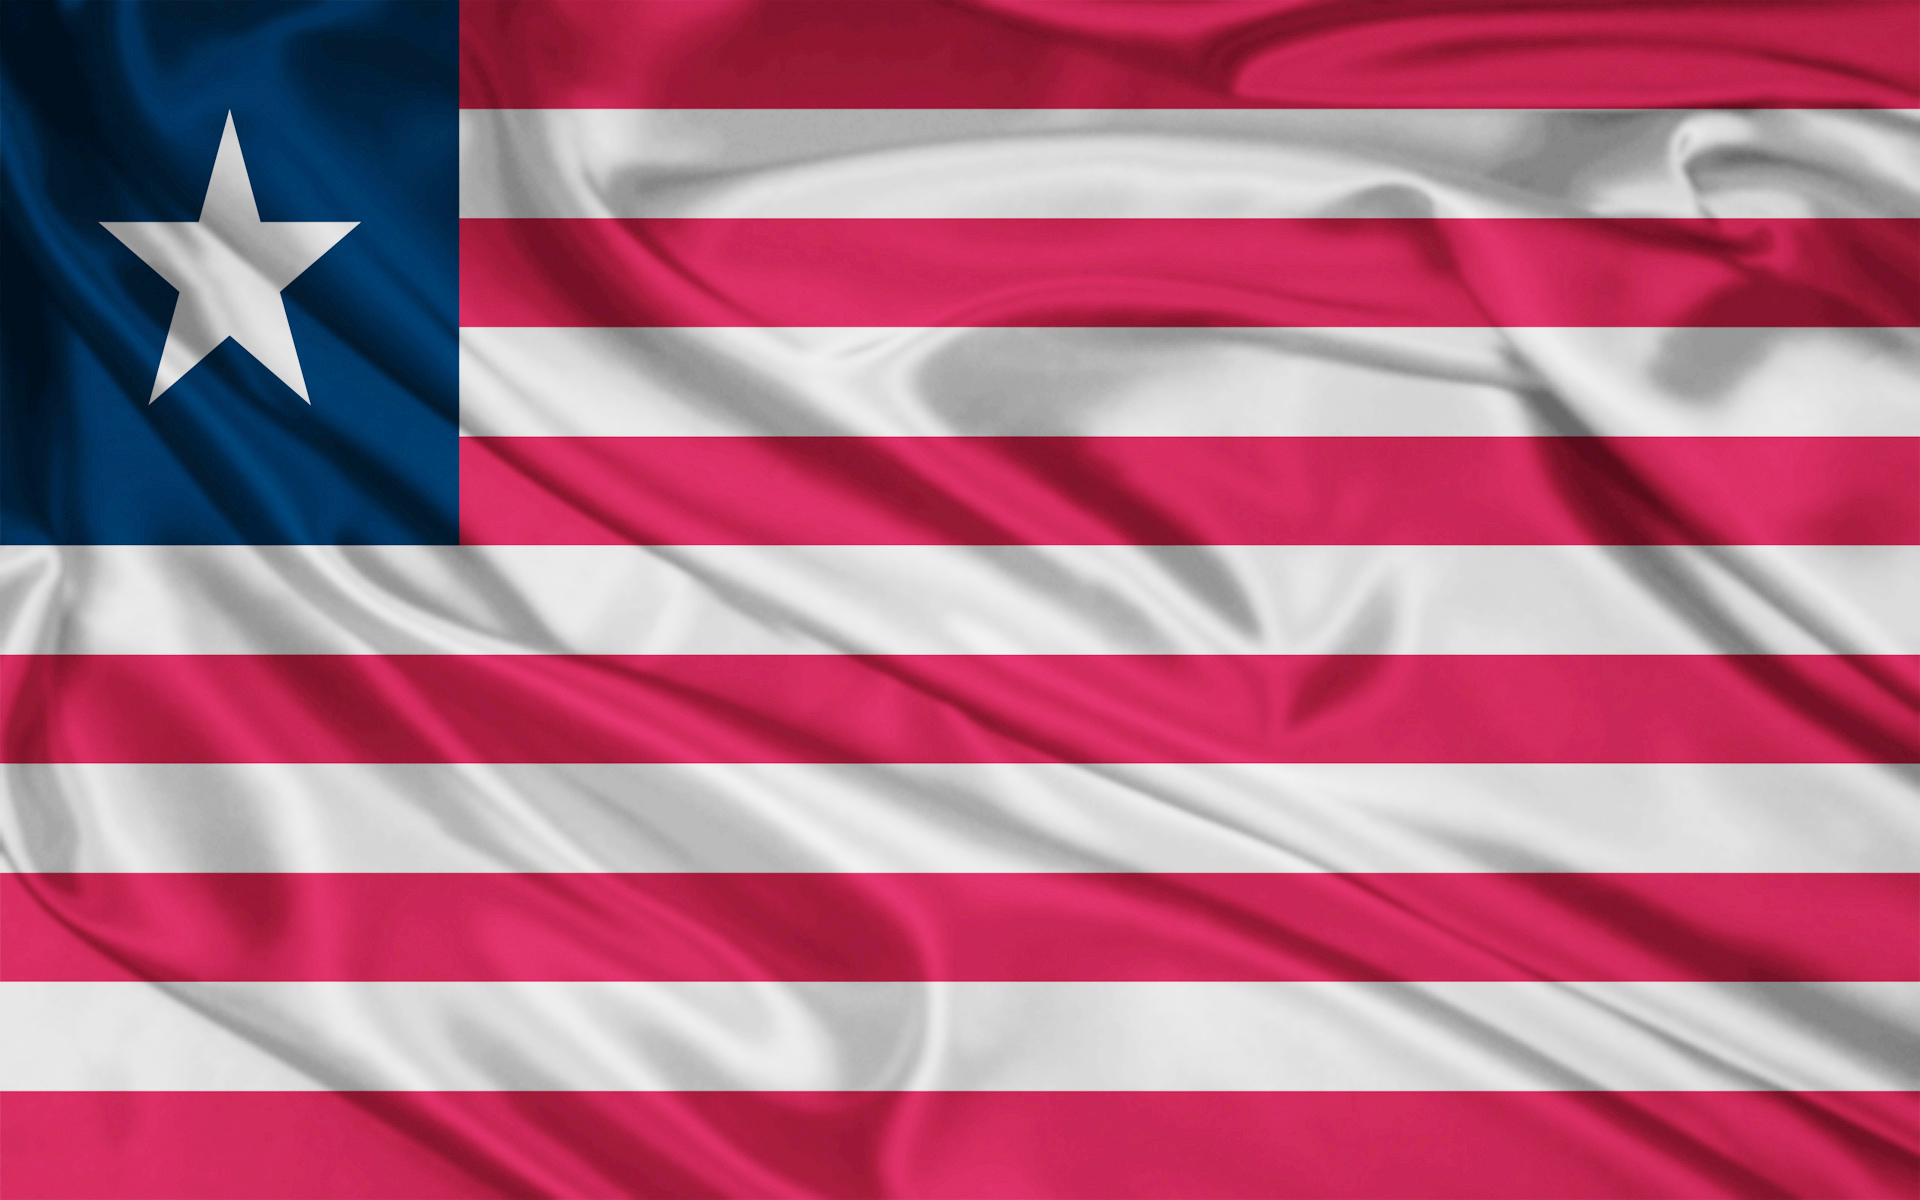 Hd Wallpaper Of Iphone X Liberia Flag Wallpapers Liberia Flag Stock Photos